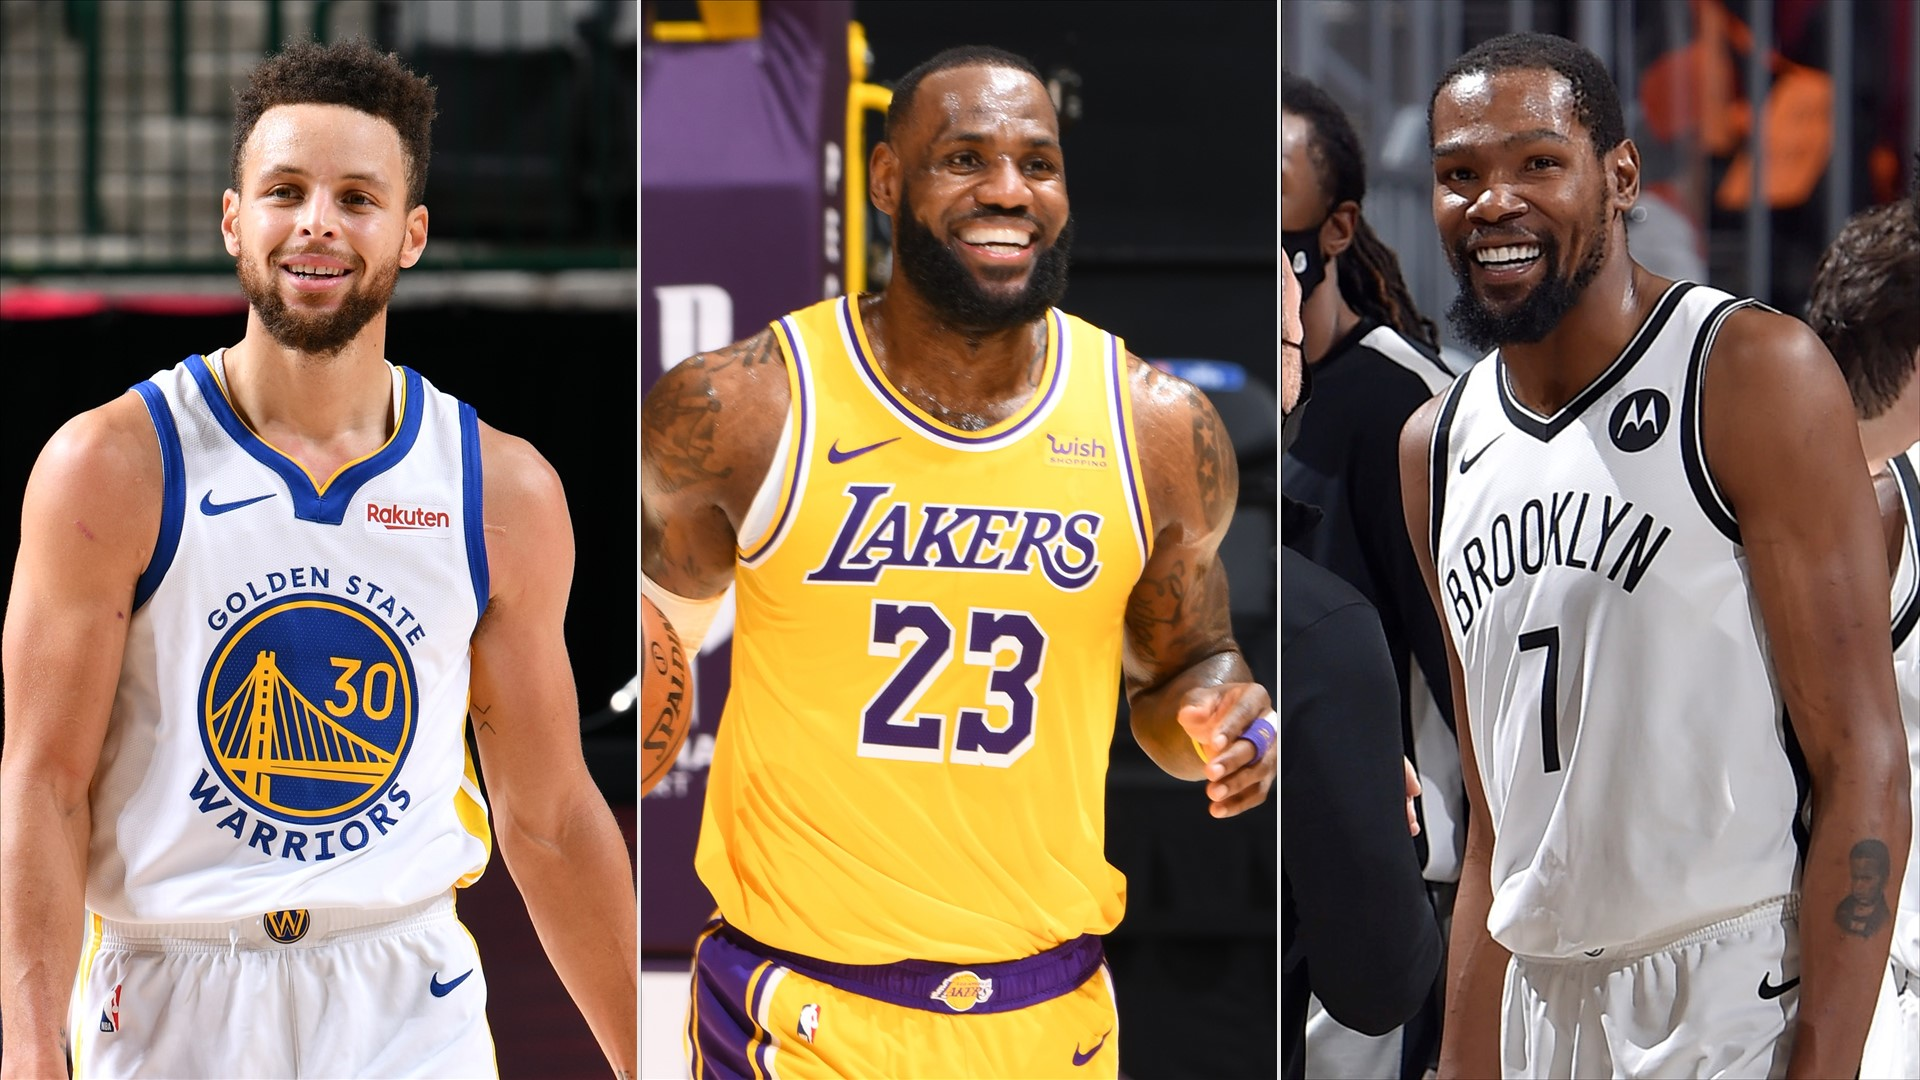 NBA All-Star Game 2021: What has and hasn't changed in the second fan vote returns - NBA IN